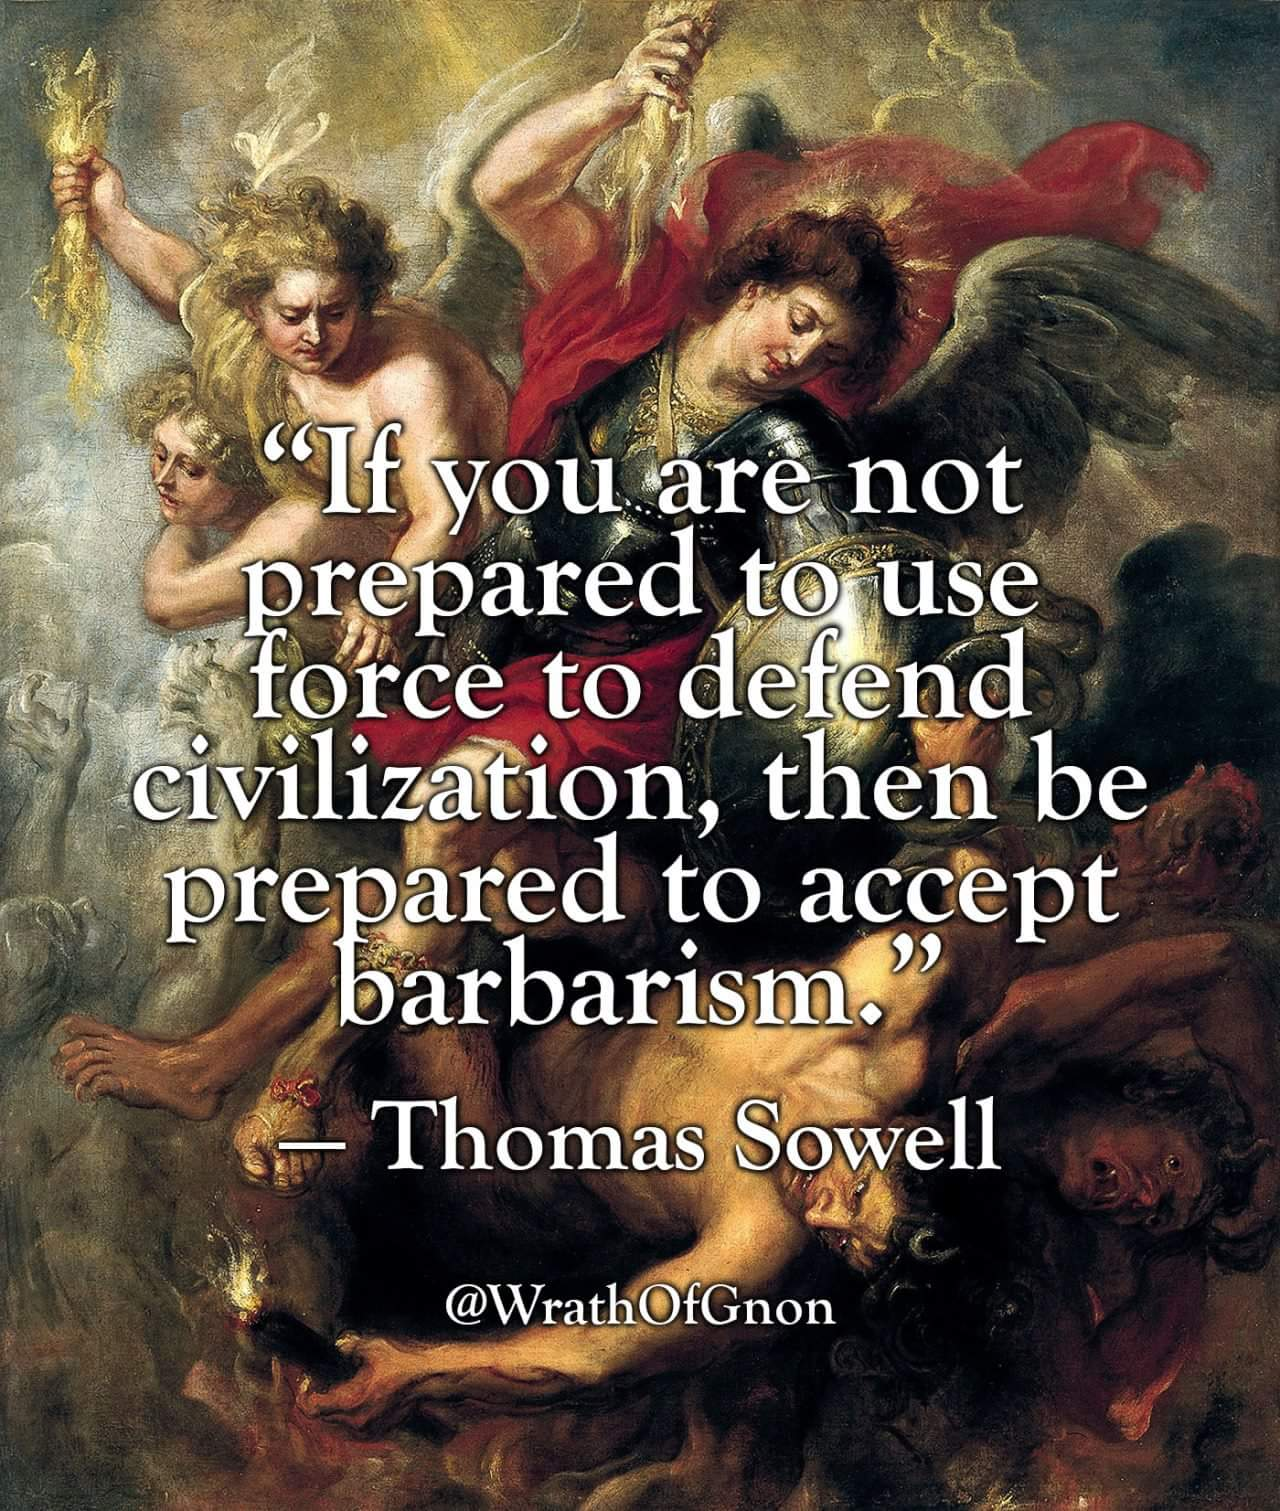 theblog from thomas sowell from thomas sowell